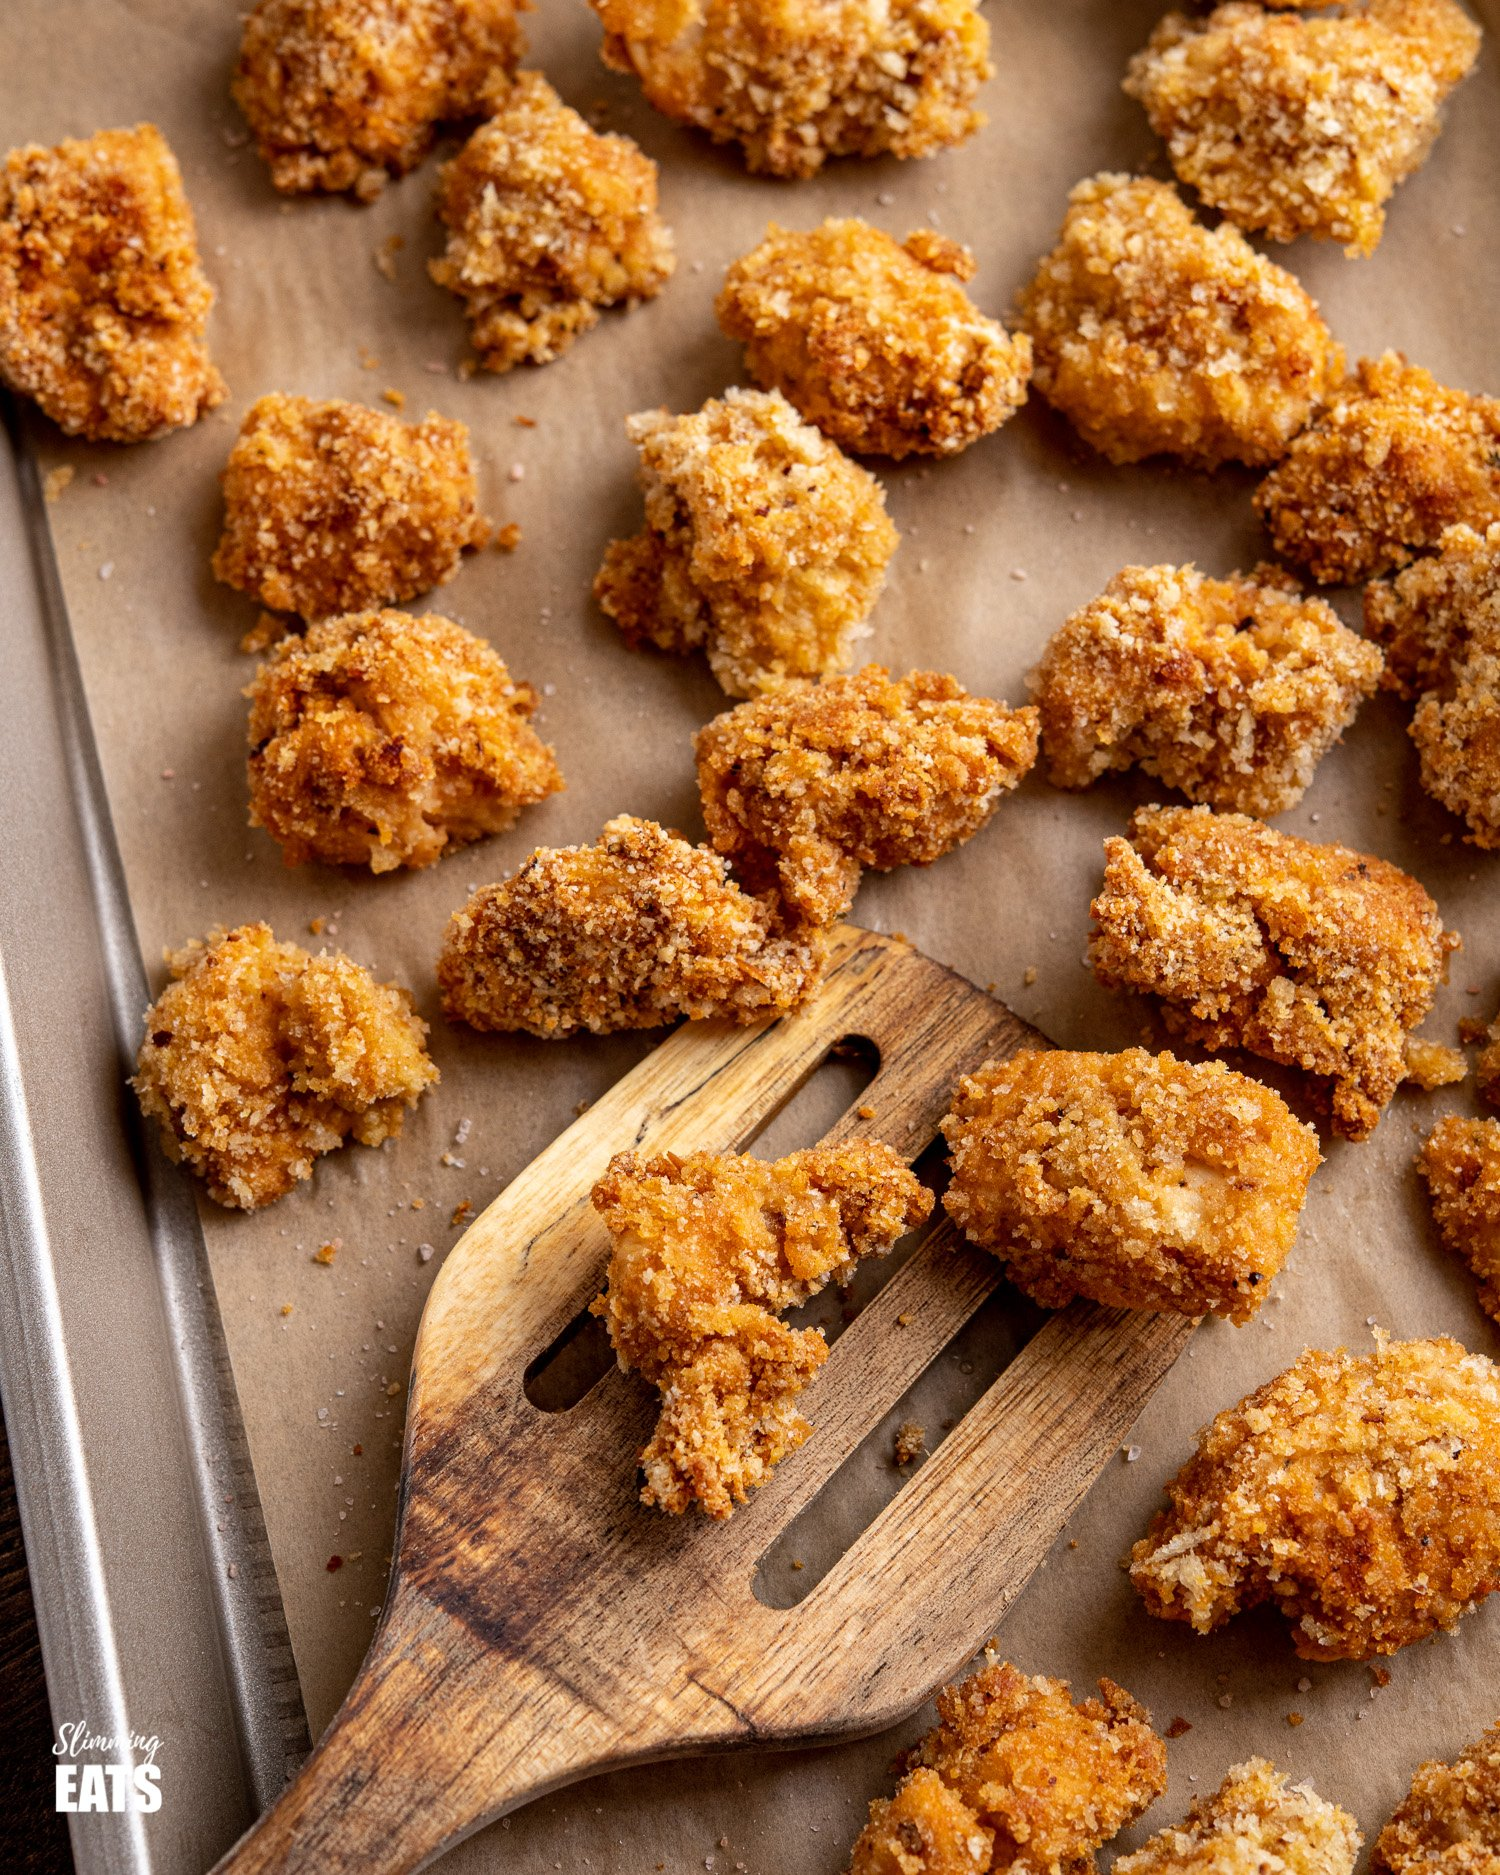 close up of oven baked popcorn chicken bites on a parchment lined baking tray with wooden spatula